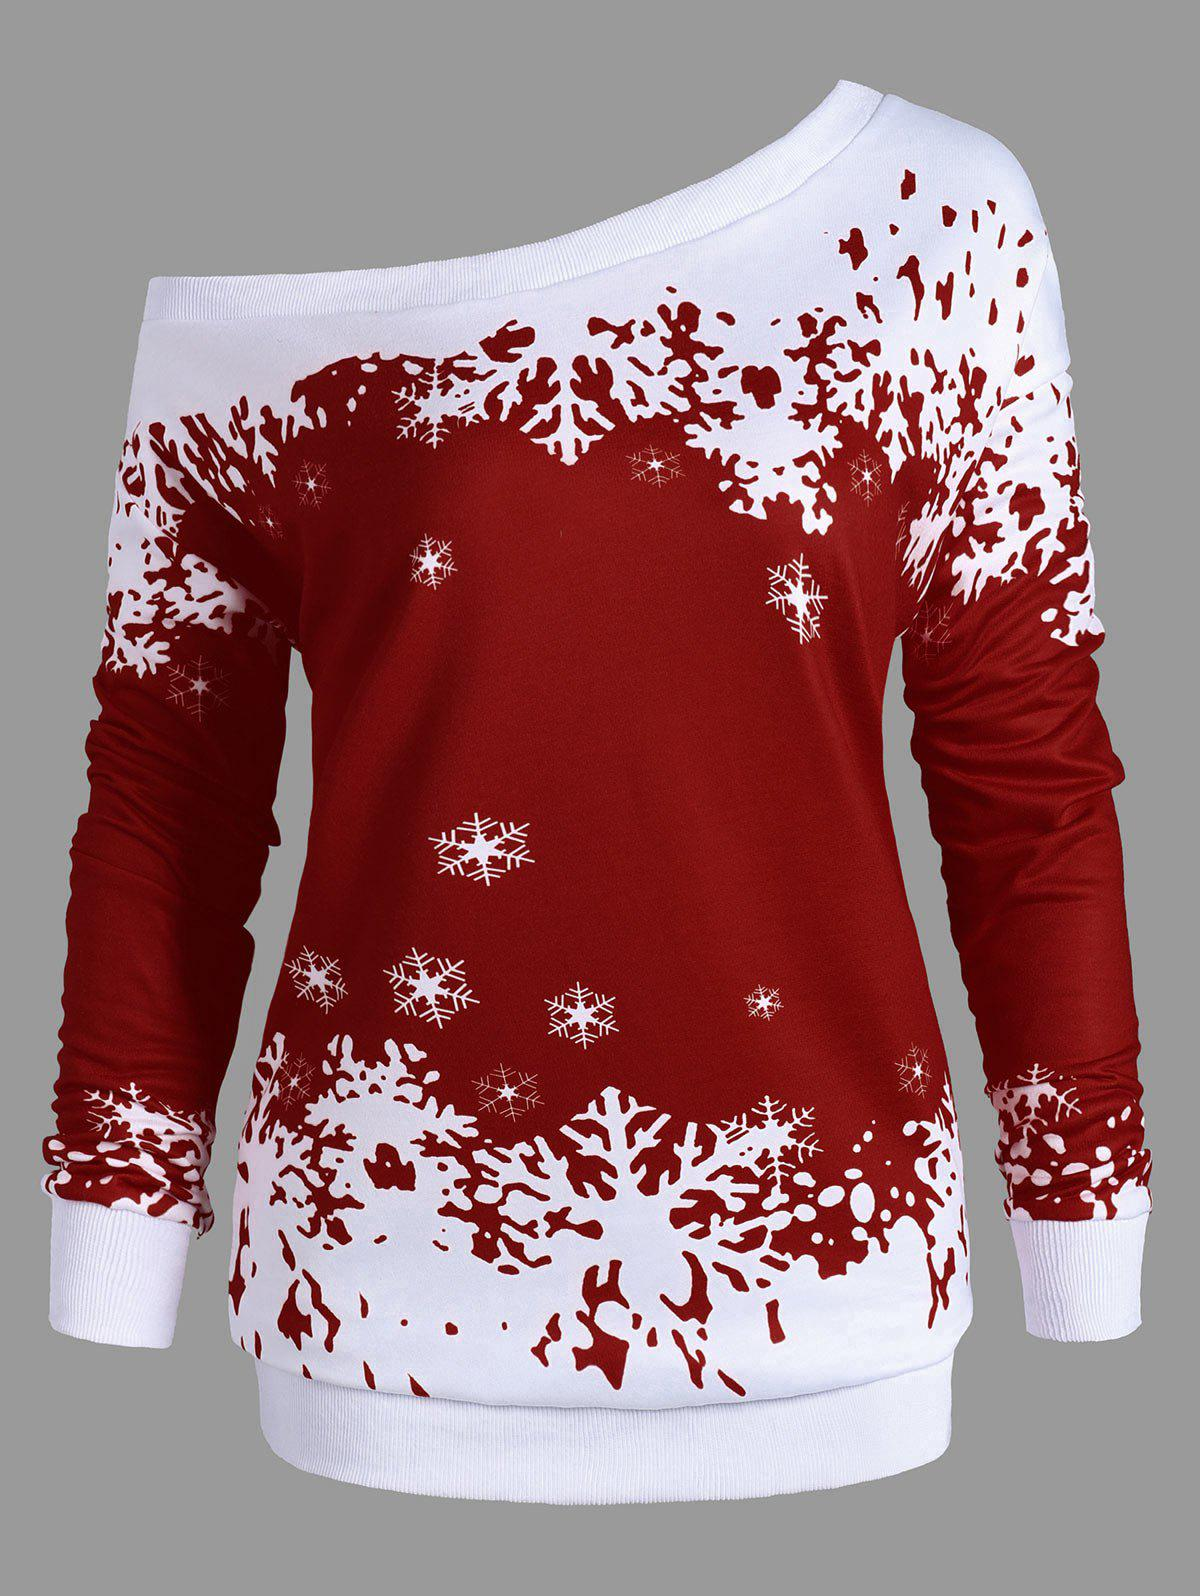 Plus Size Skew Neck Christmas Snowflake Sweatshirt plus size skew neck floral sweatshirt